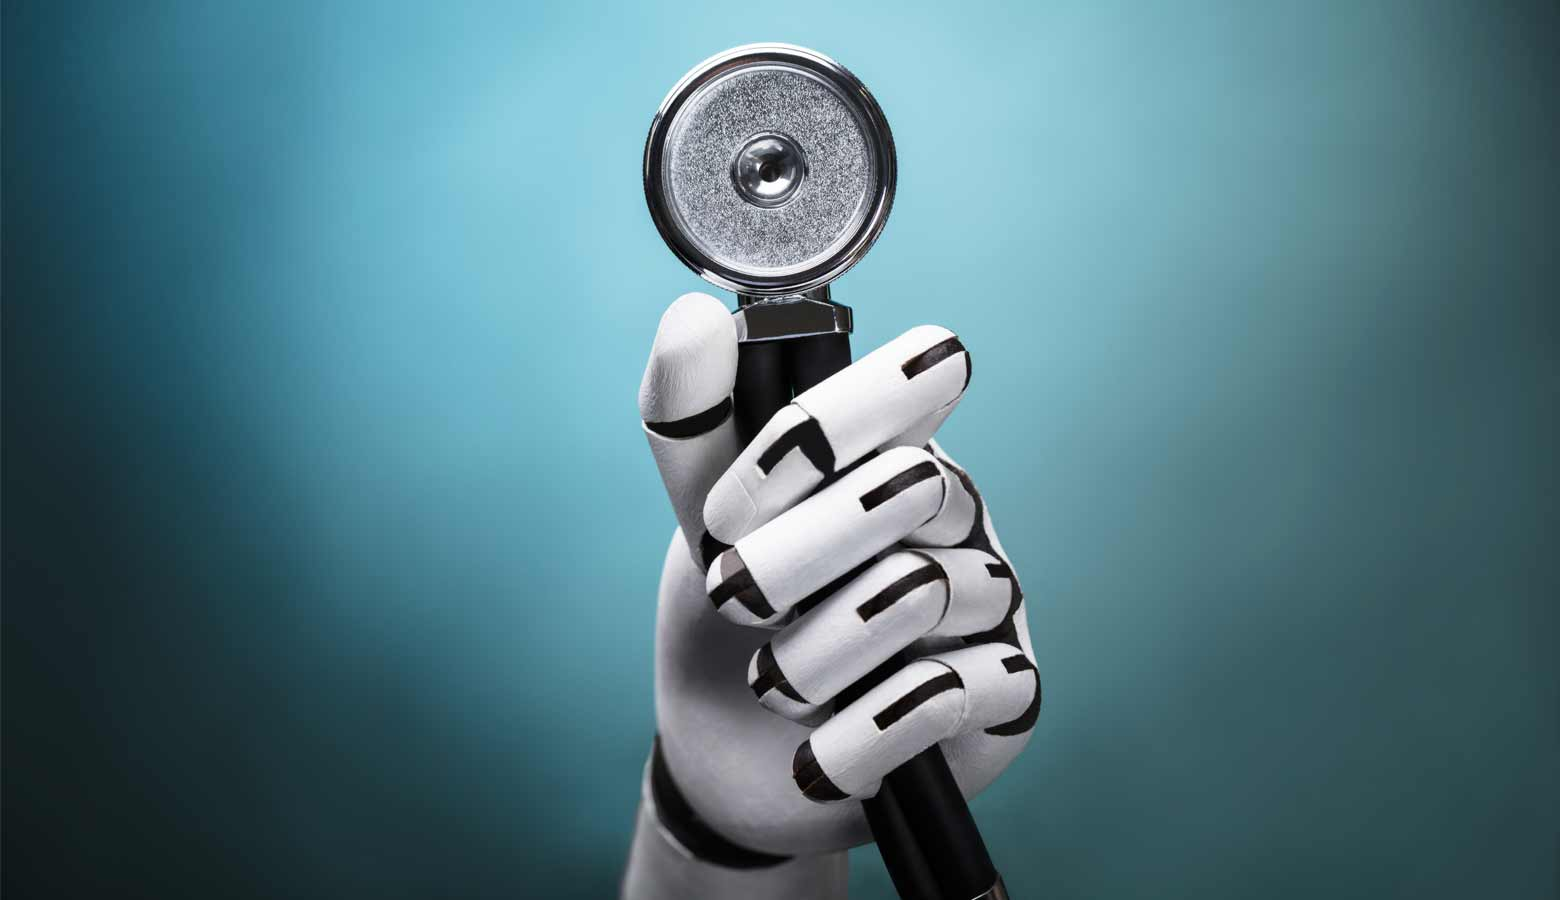 Robot's hand with a stethoscope